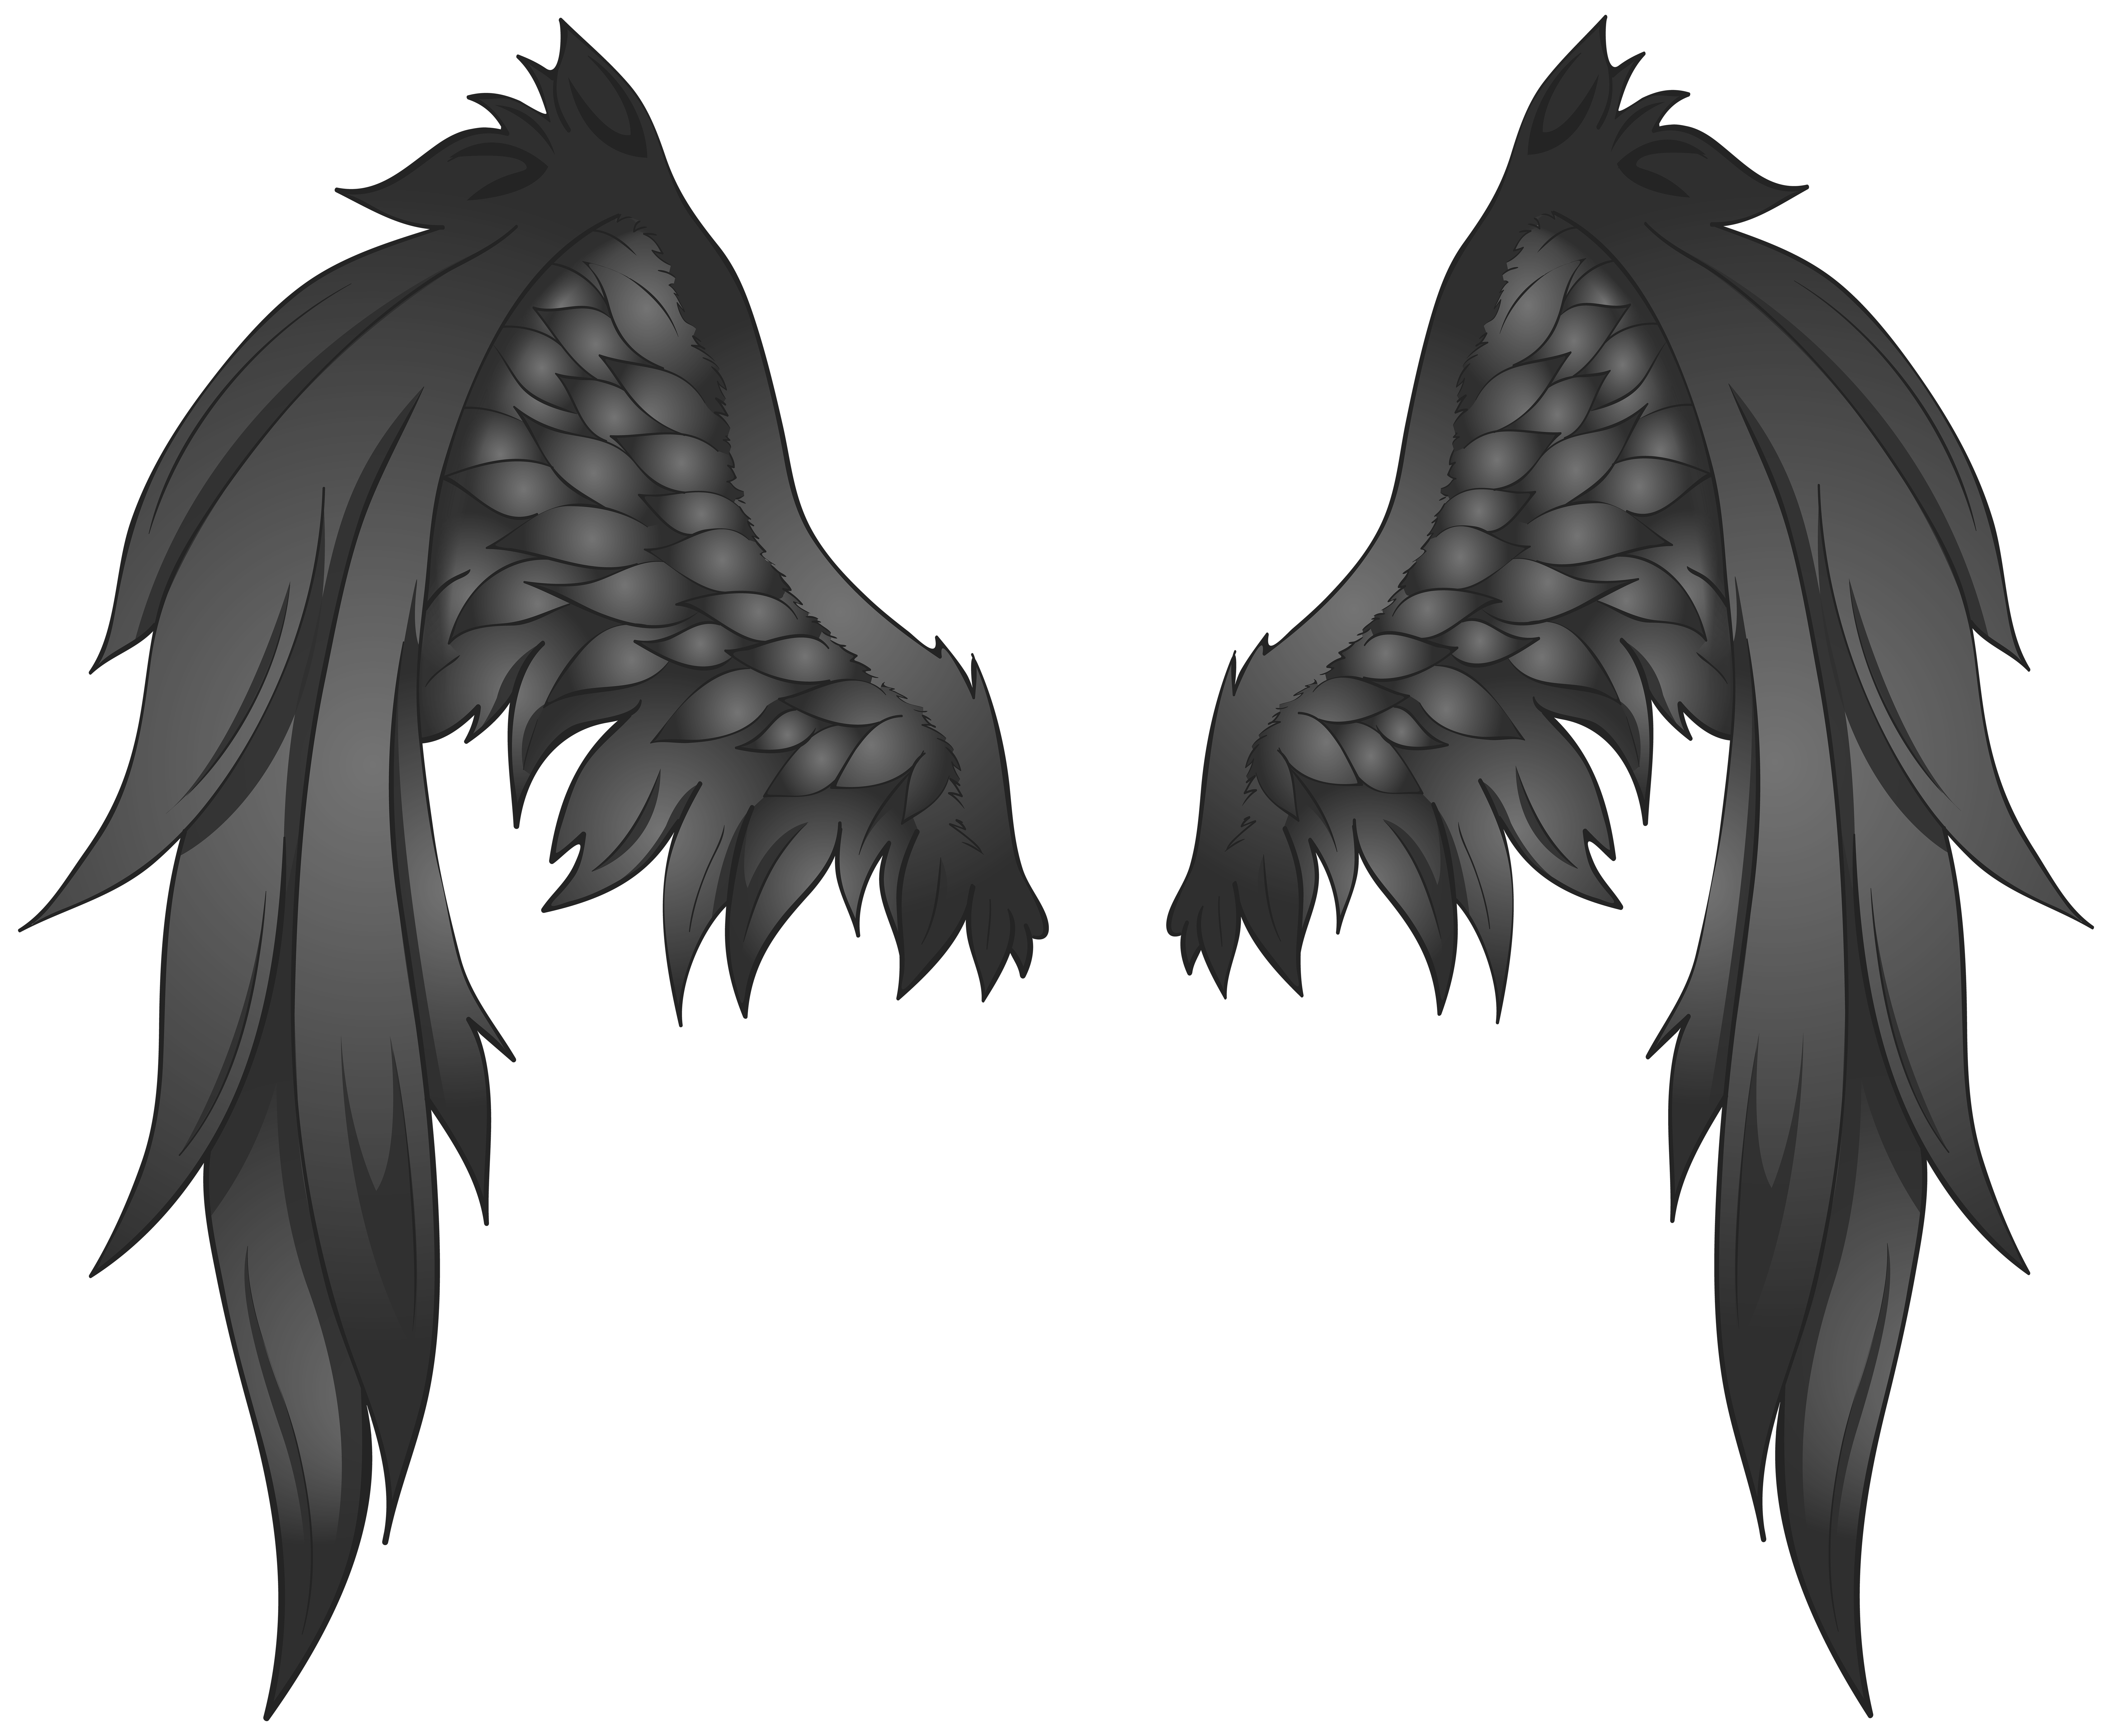 Cartoon wing png. Black wings transparent image